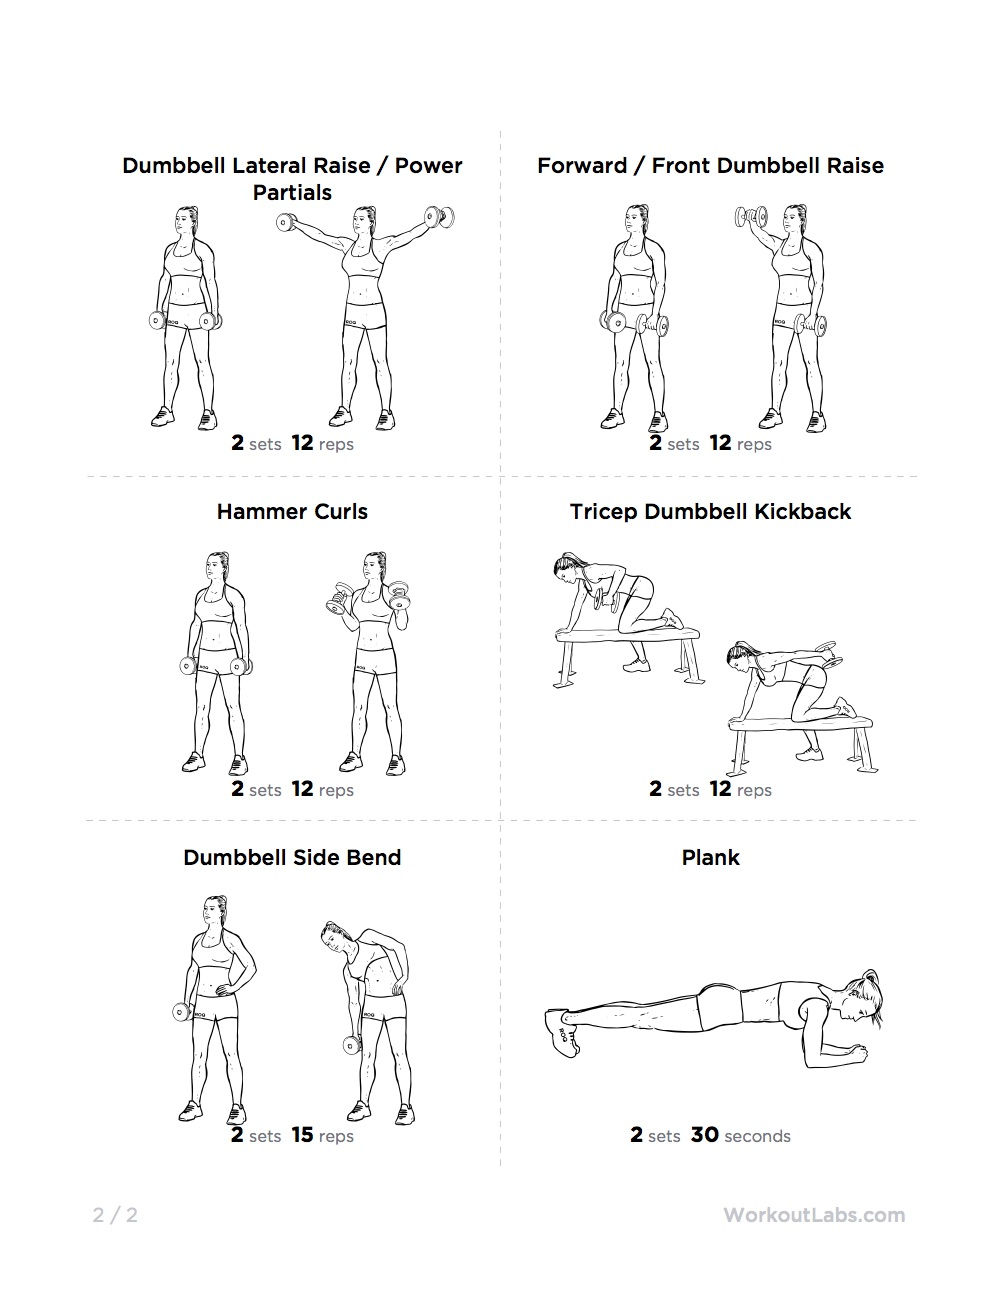 Dumbbell Workout Routines For Beginners Av